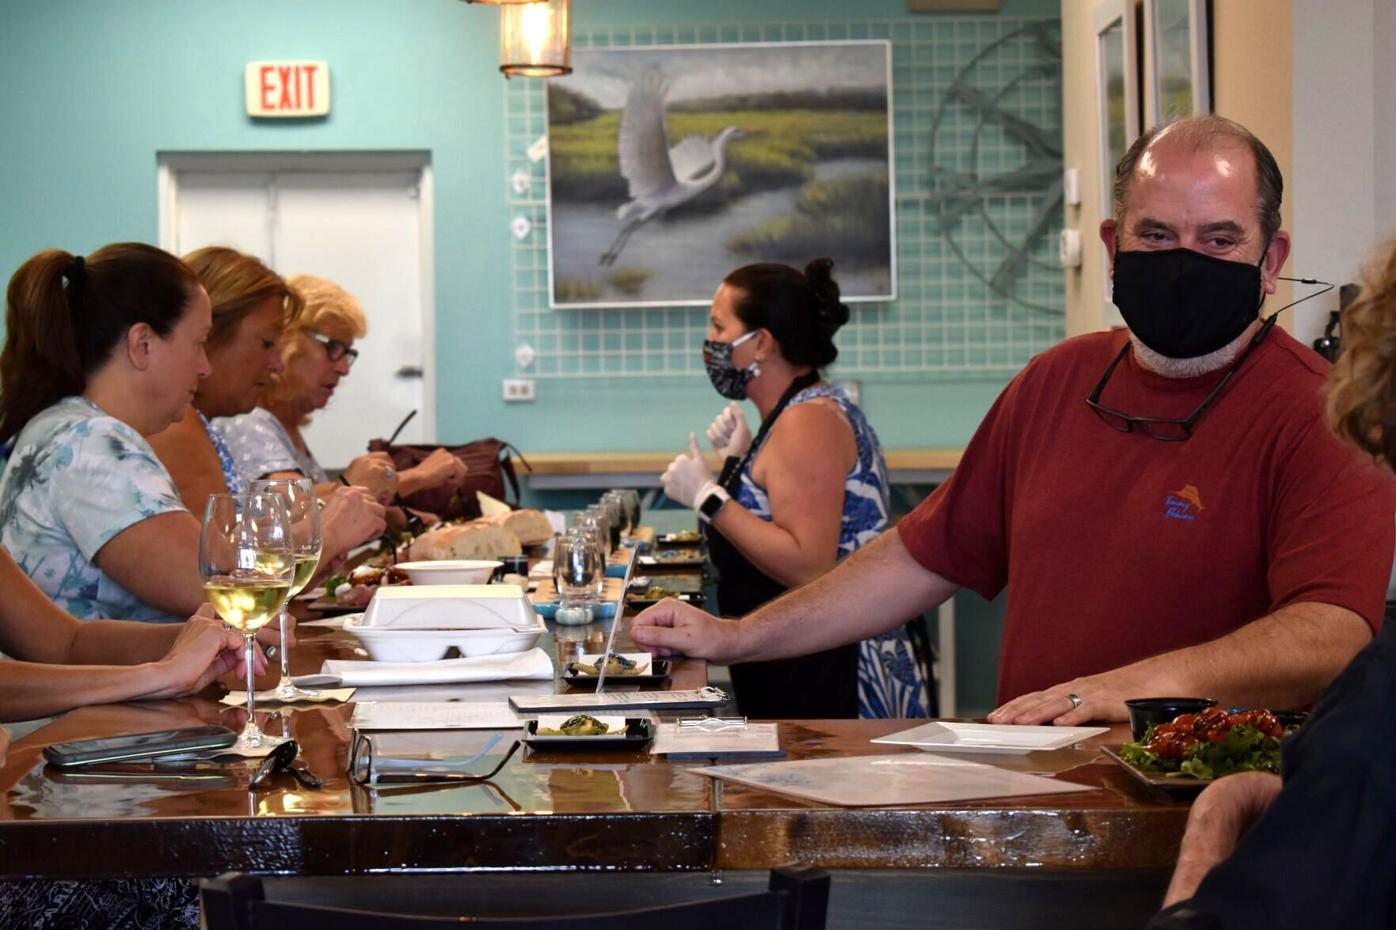 Lori and Tim Sandage, owners of Coastal Expressions & Wine, serve customers at their wine bar